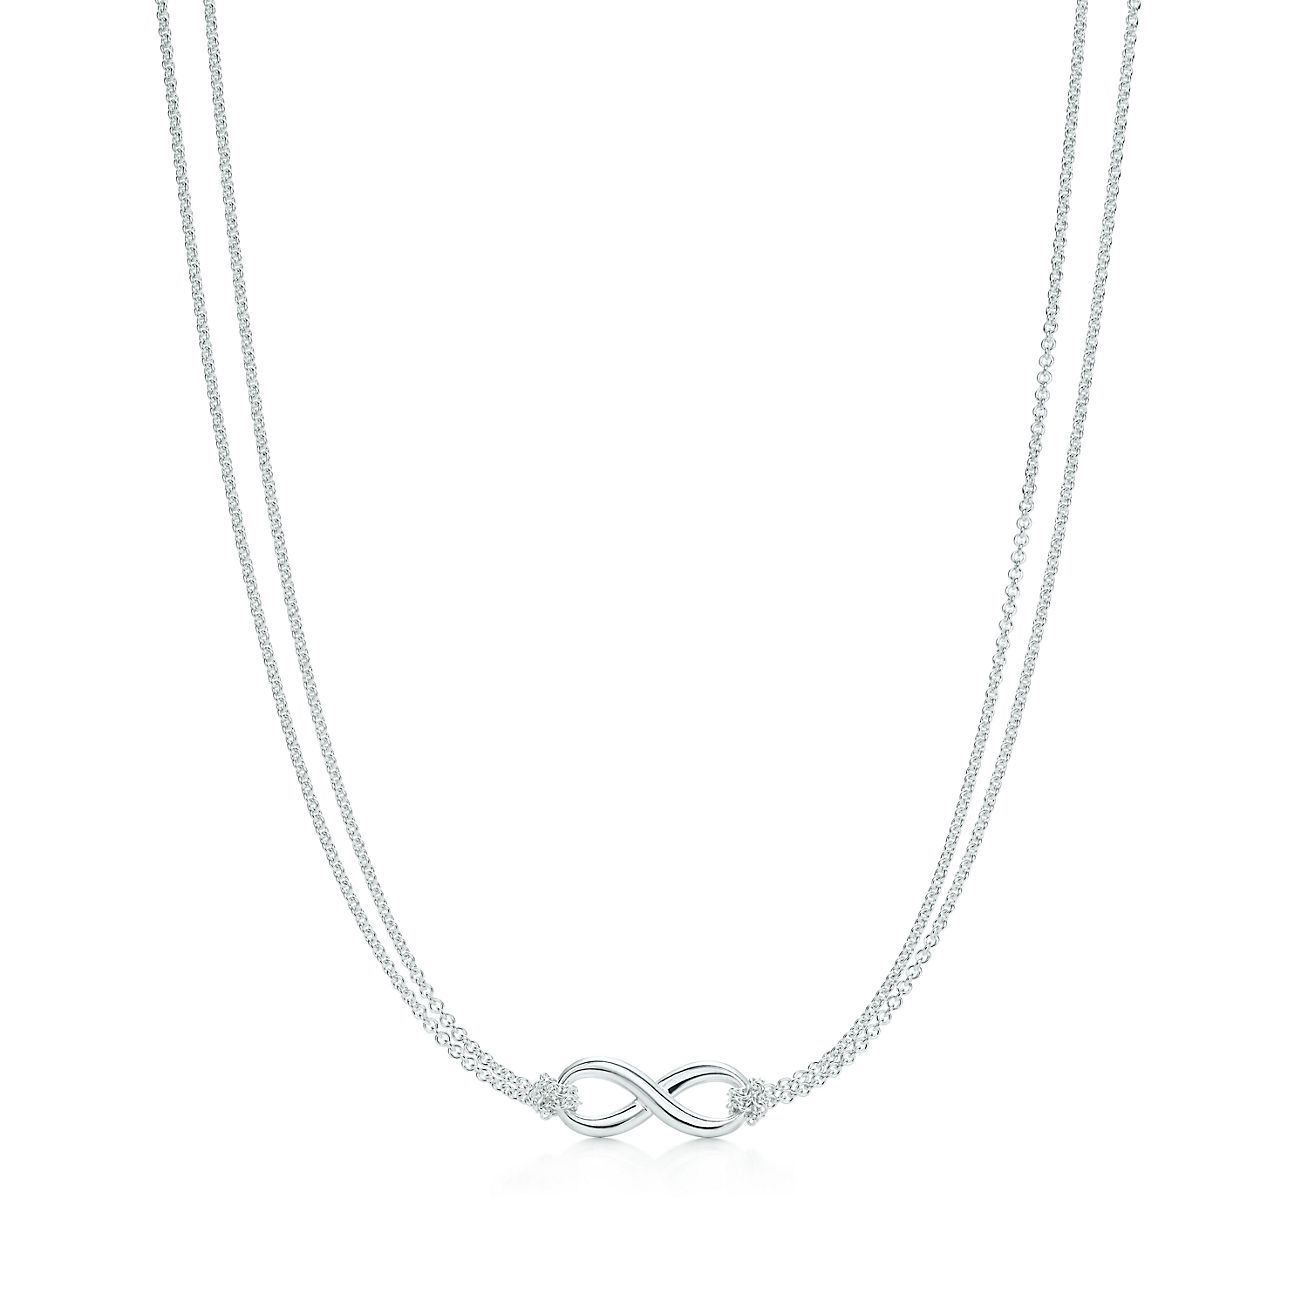 Tiffany Infinity pendant in sterling silver on a 18